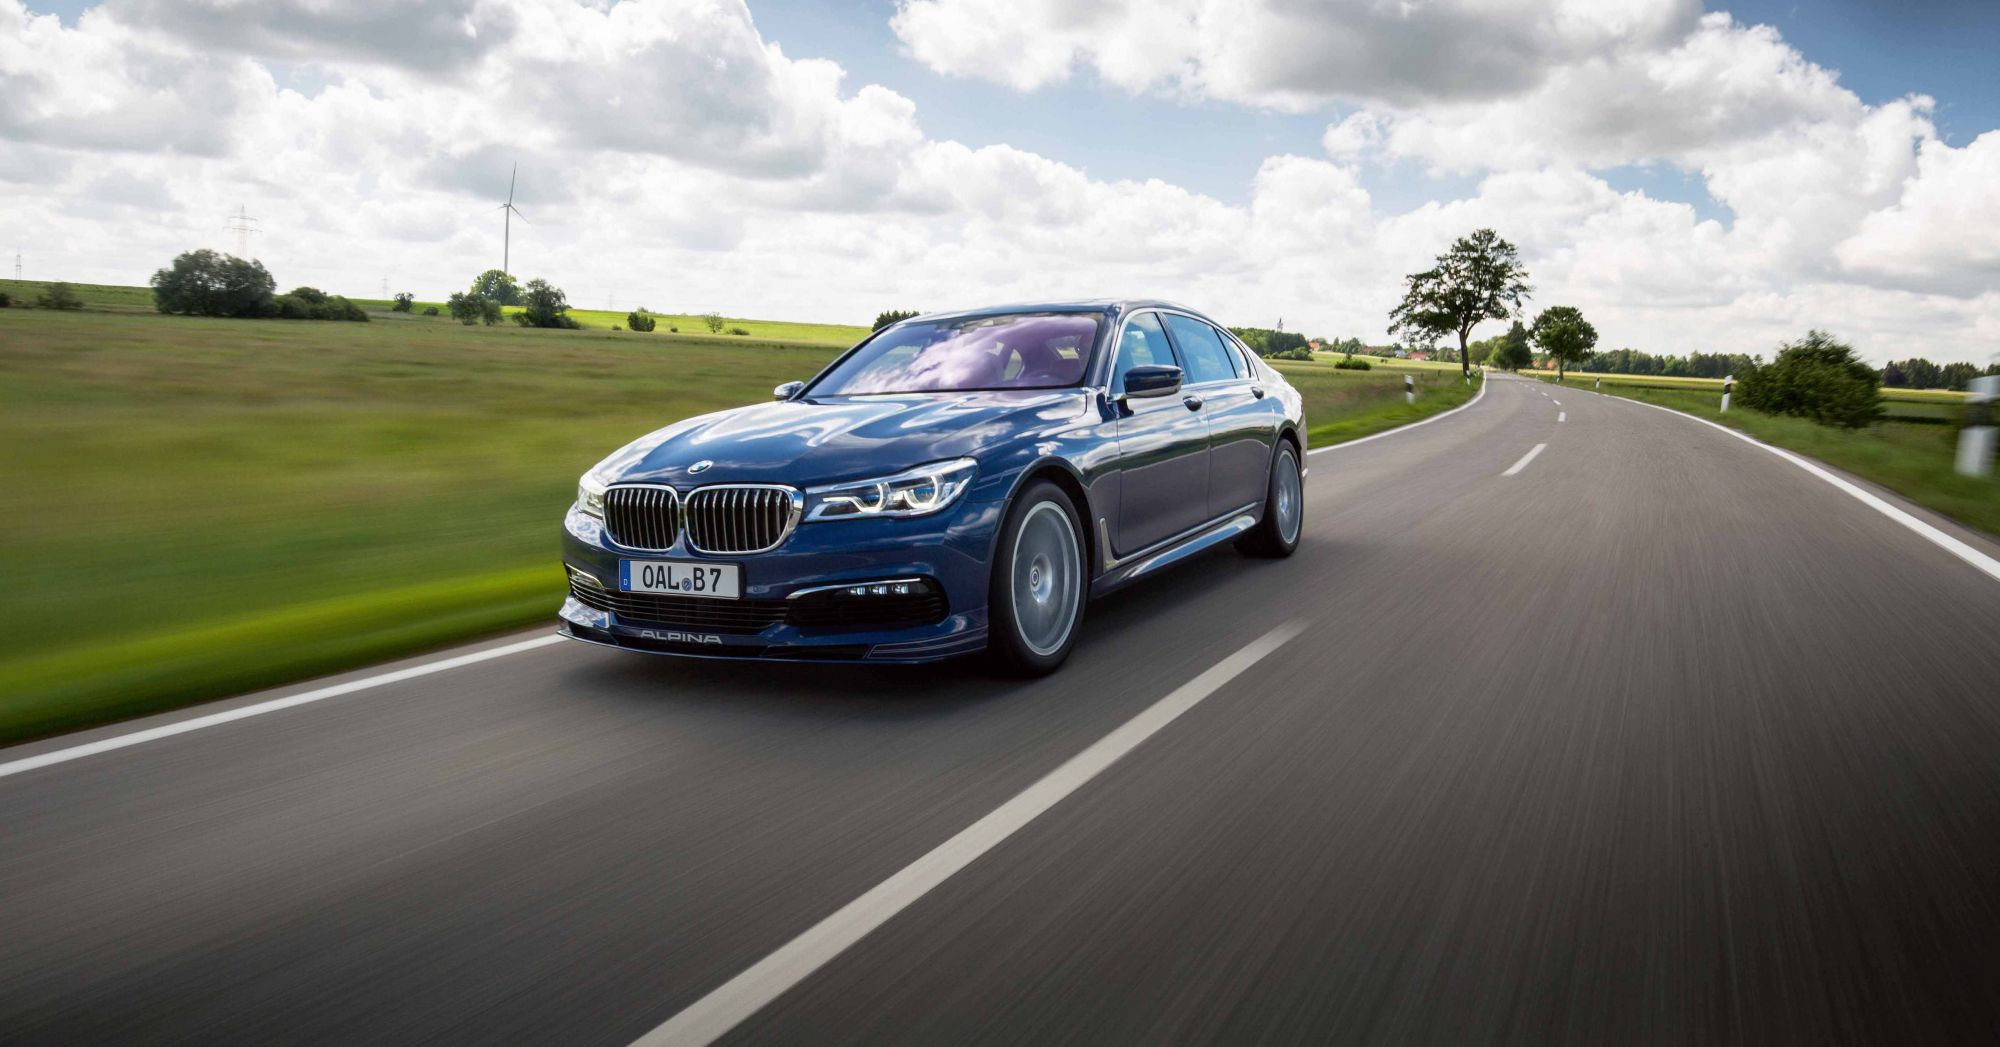 Meet The BMW 7 Series That Is In A League Of Its Own